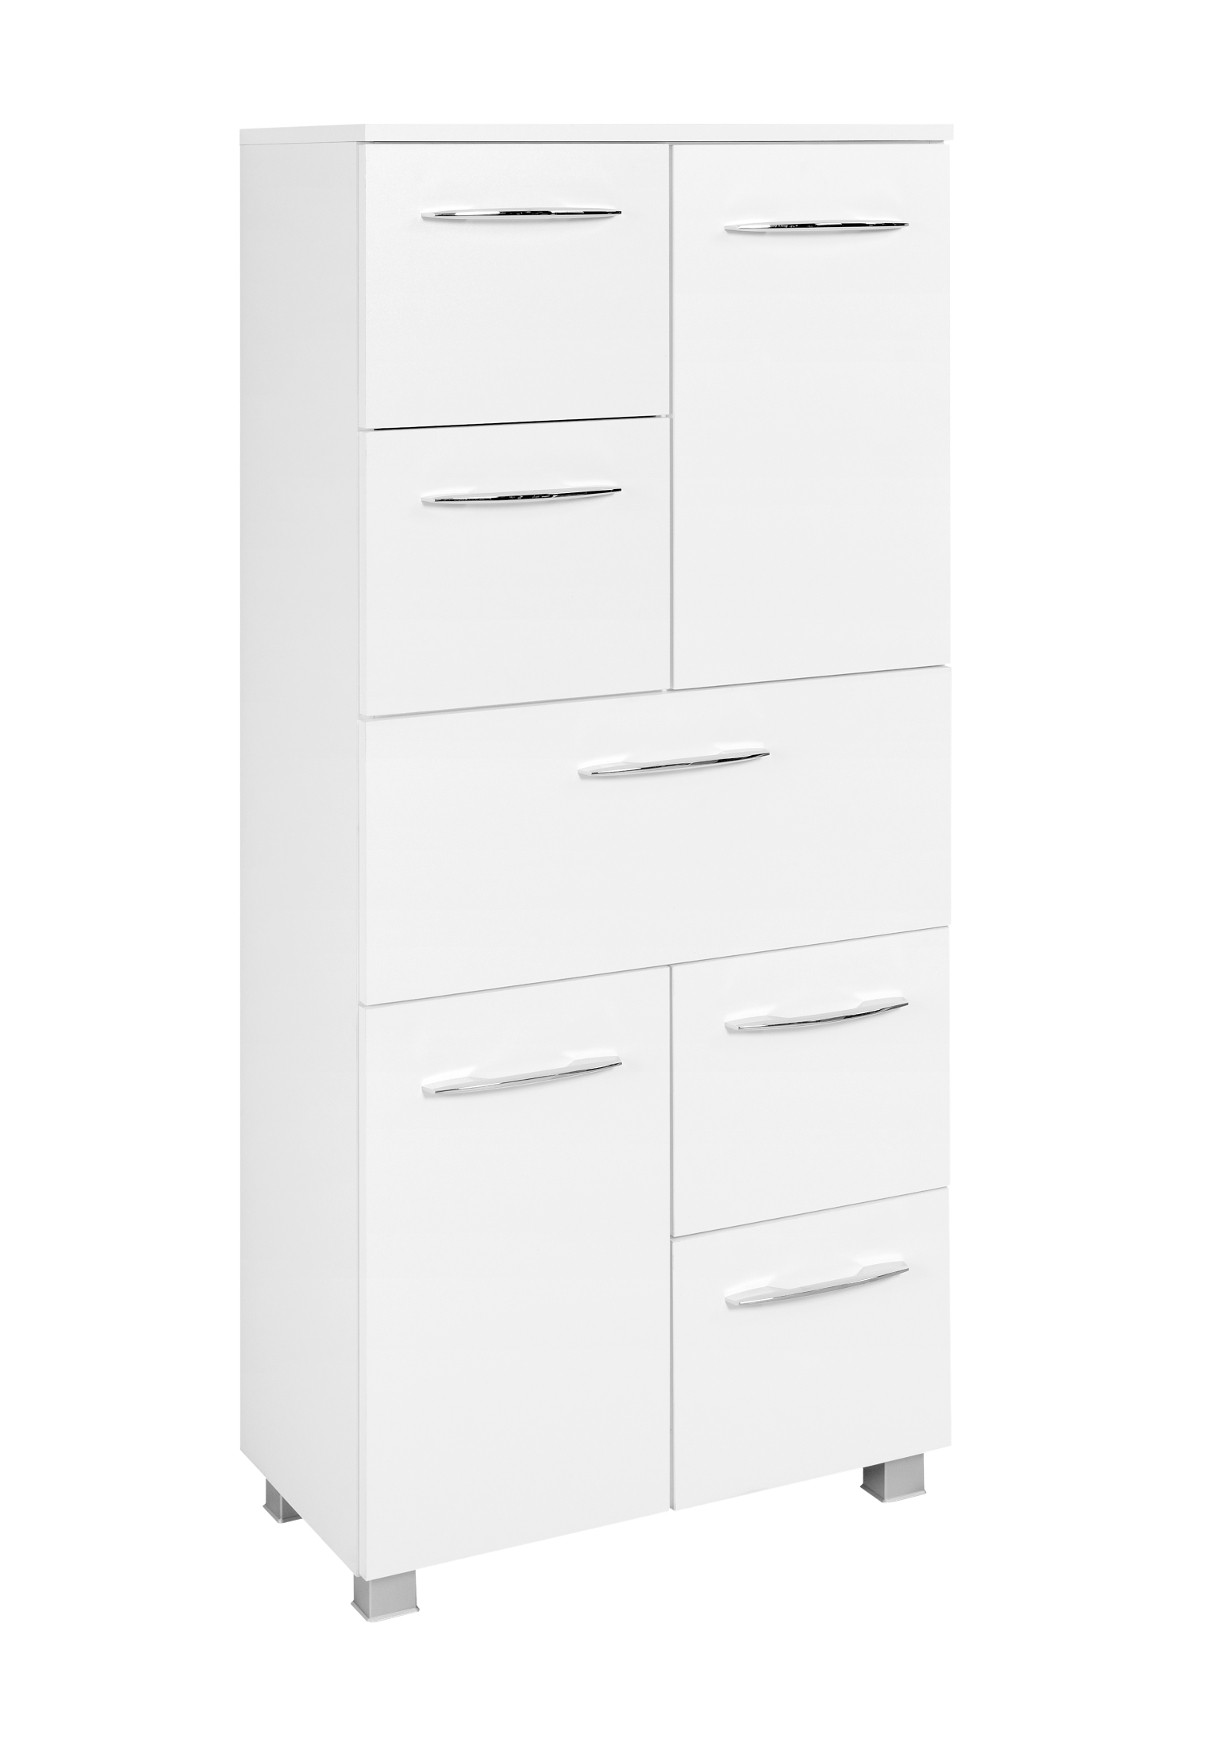 badezimmer highboard portofino midischrank badm bel badschrank 60 cm weiss 4250163751479 ebay. Black Bedroom Furniture Sets. Home Design Ideas